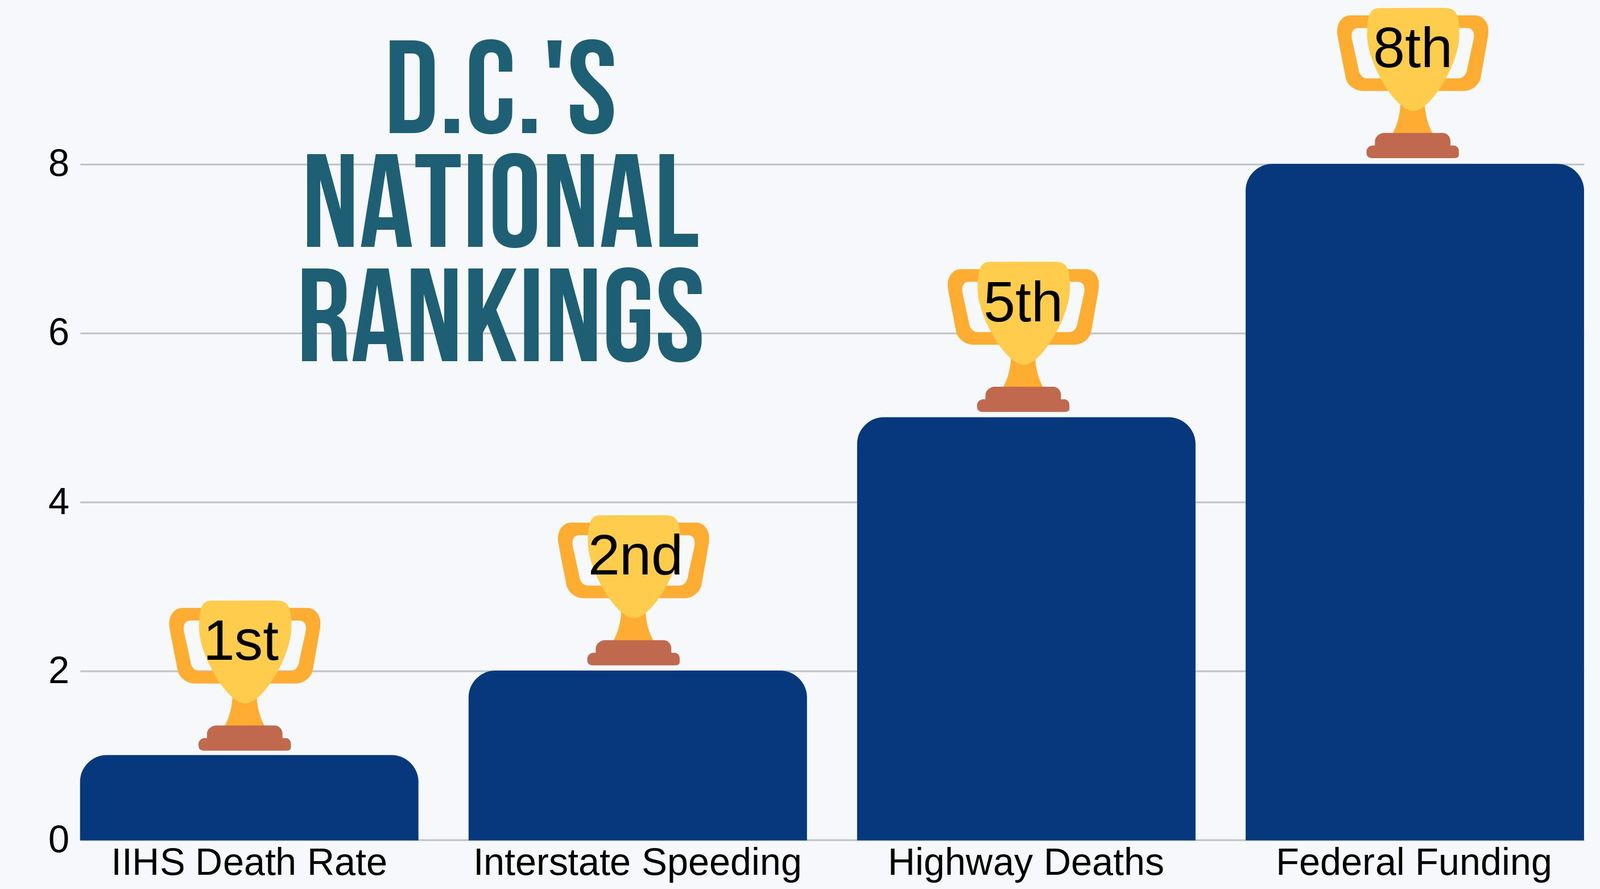 District of Columbia's national rankings 4 best categories